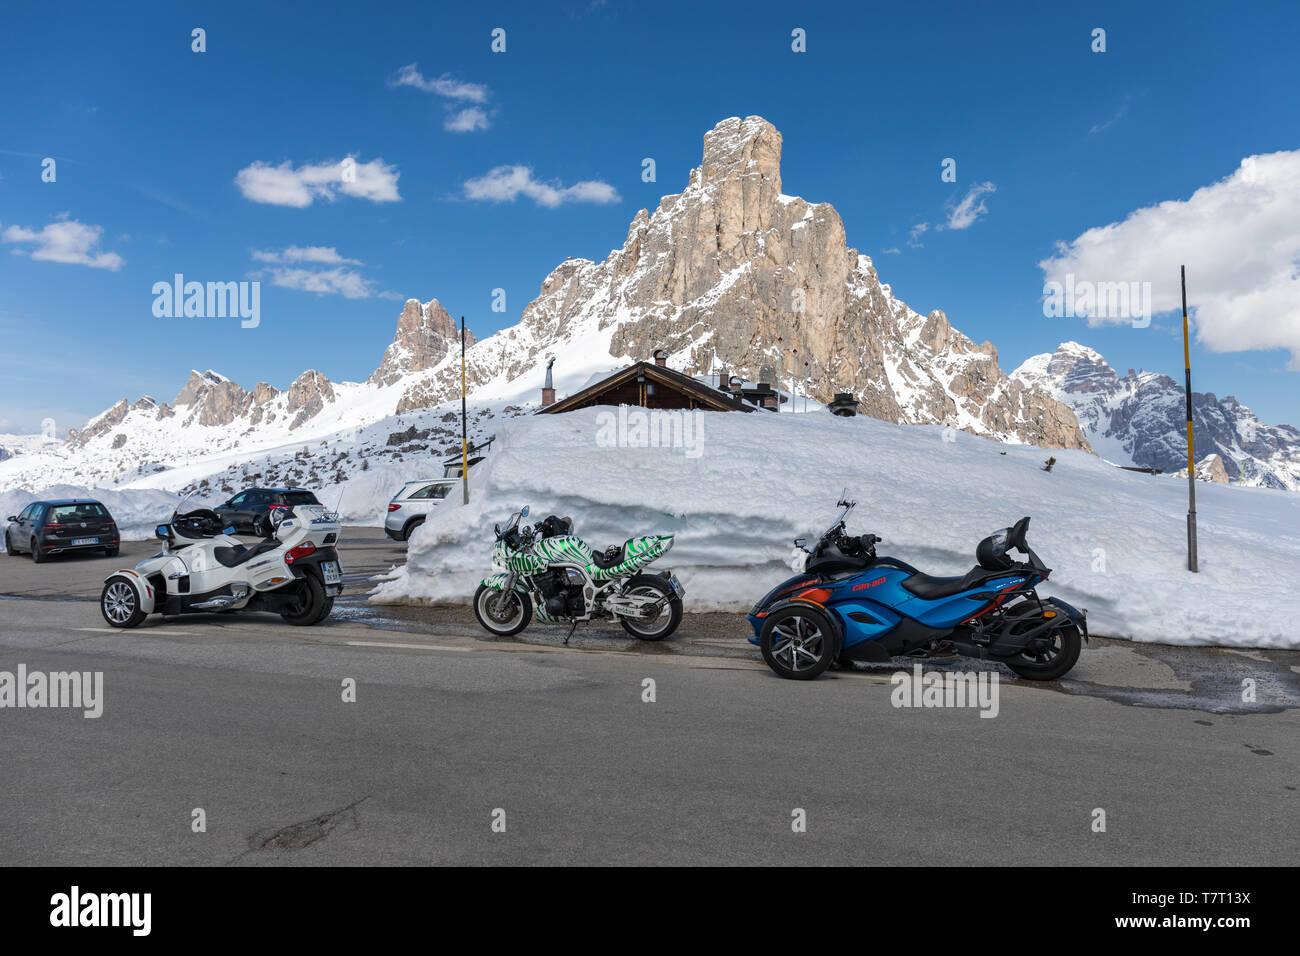 Motorcycles parked at the Giau Pass, Dolomites, Italy. La Gusela mountain in the background - Stock Image